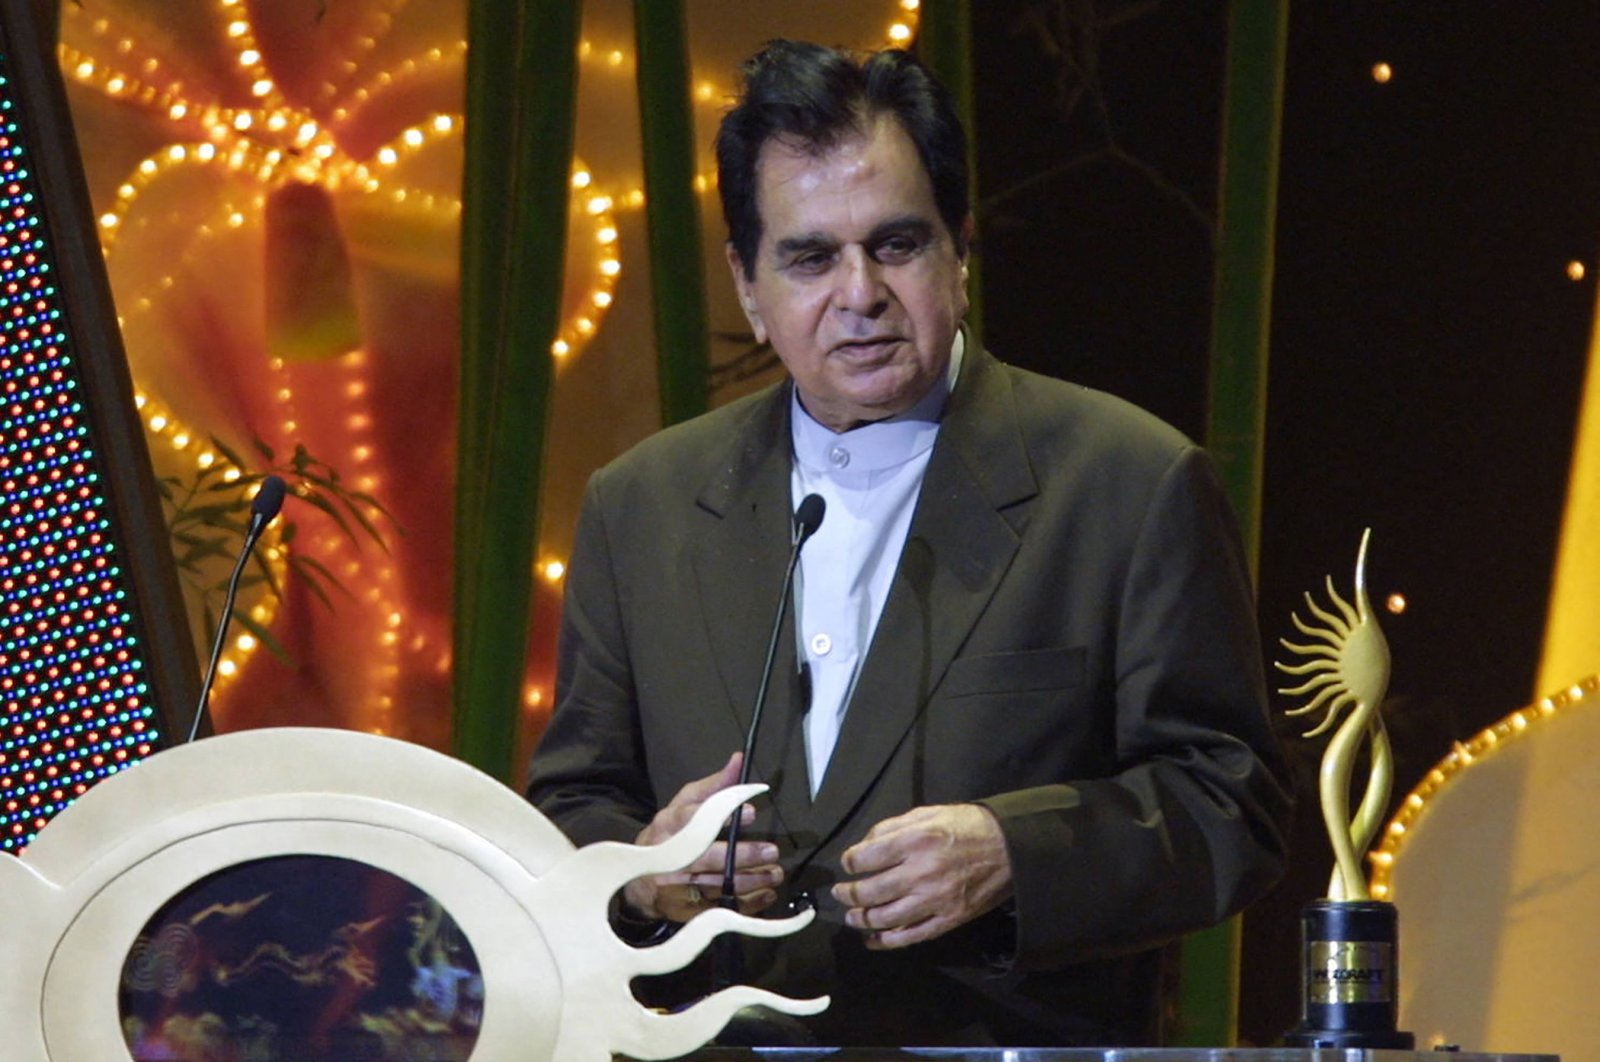 Indian veteran actor Dilip Kumar speaks at the podium for his award for outstanding achievement in Indian cinema at the 5th International Indian Film Academy (IIFA) Awards in Singapore, May 22, 2004. (AFP File Photo)